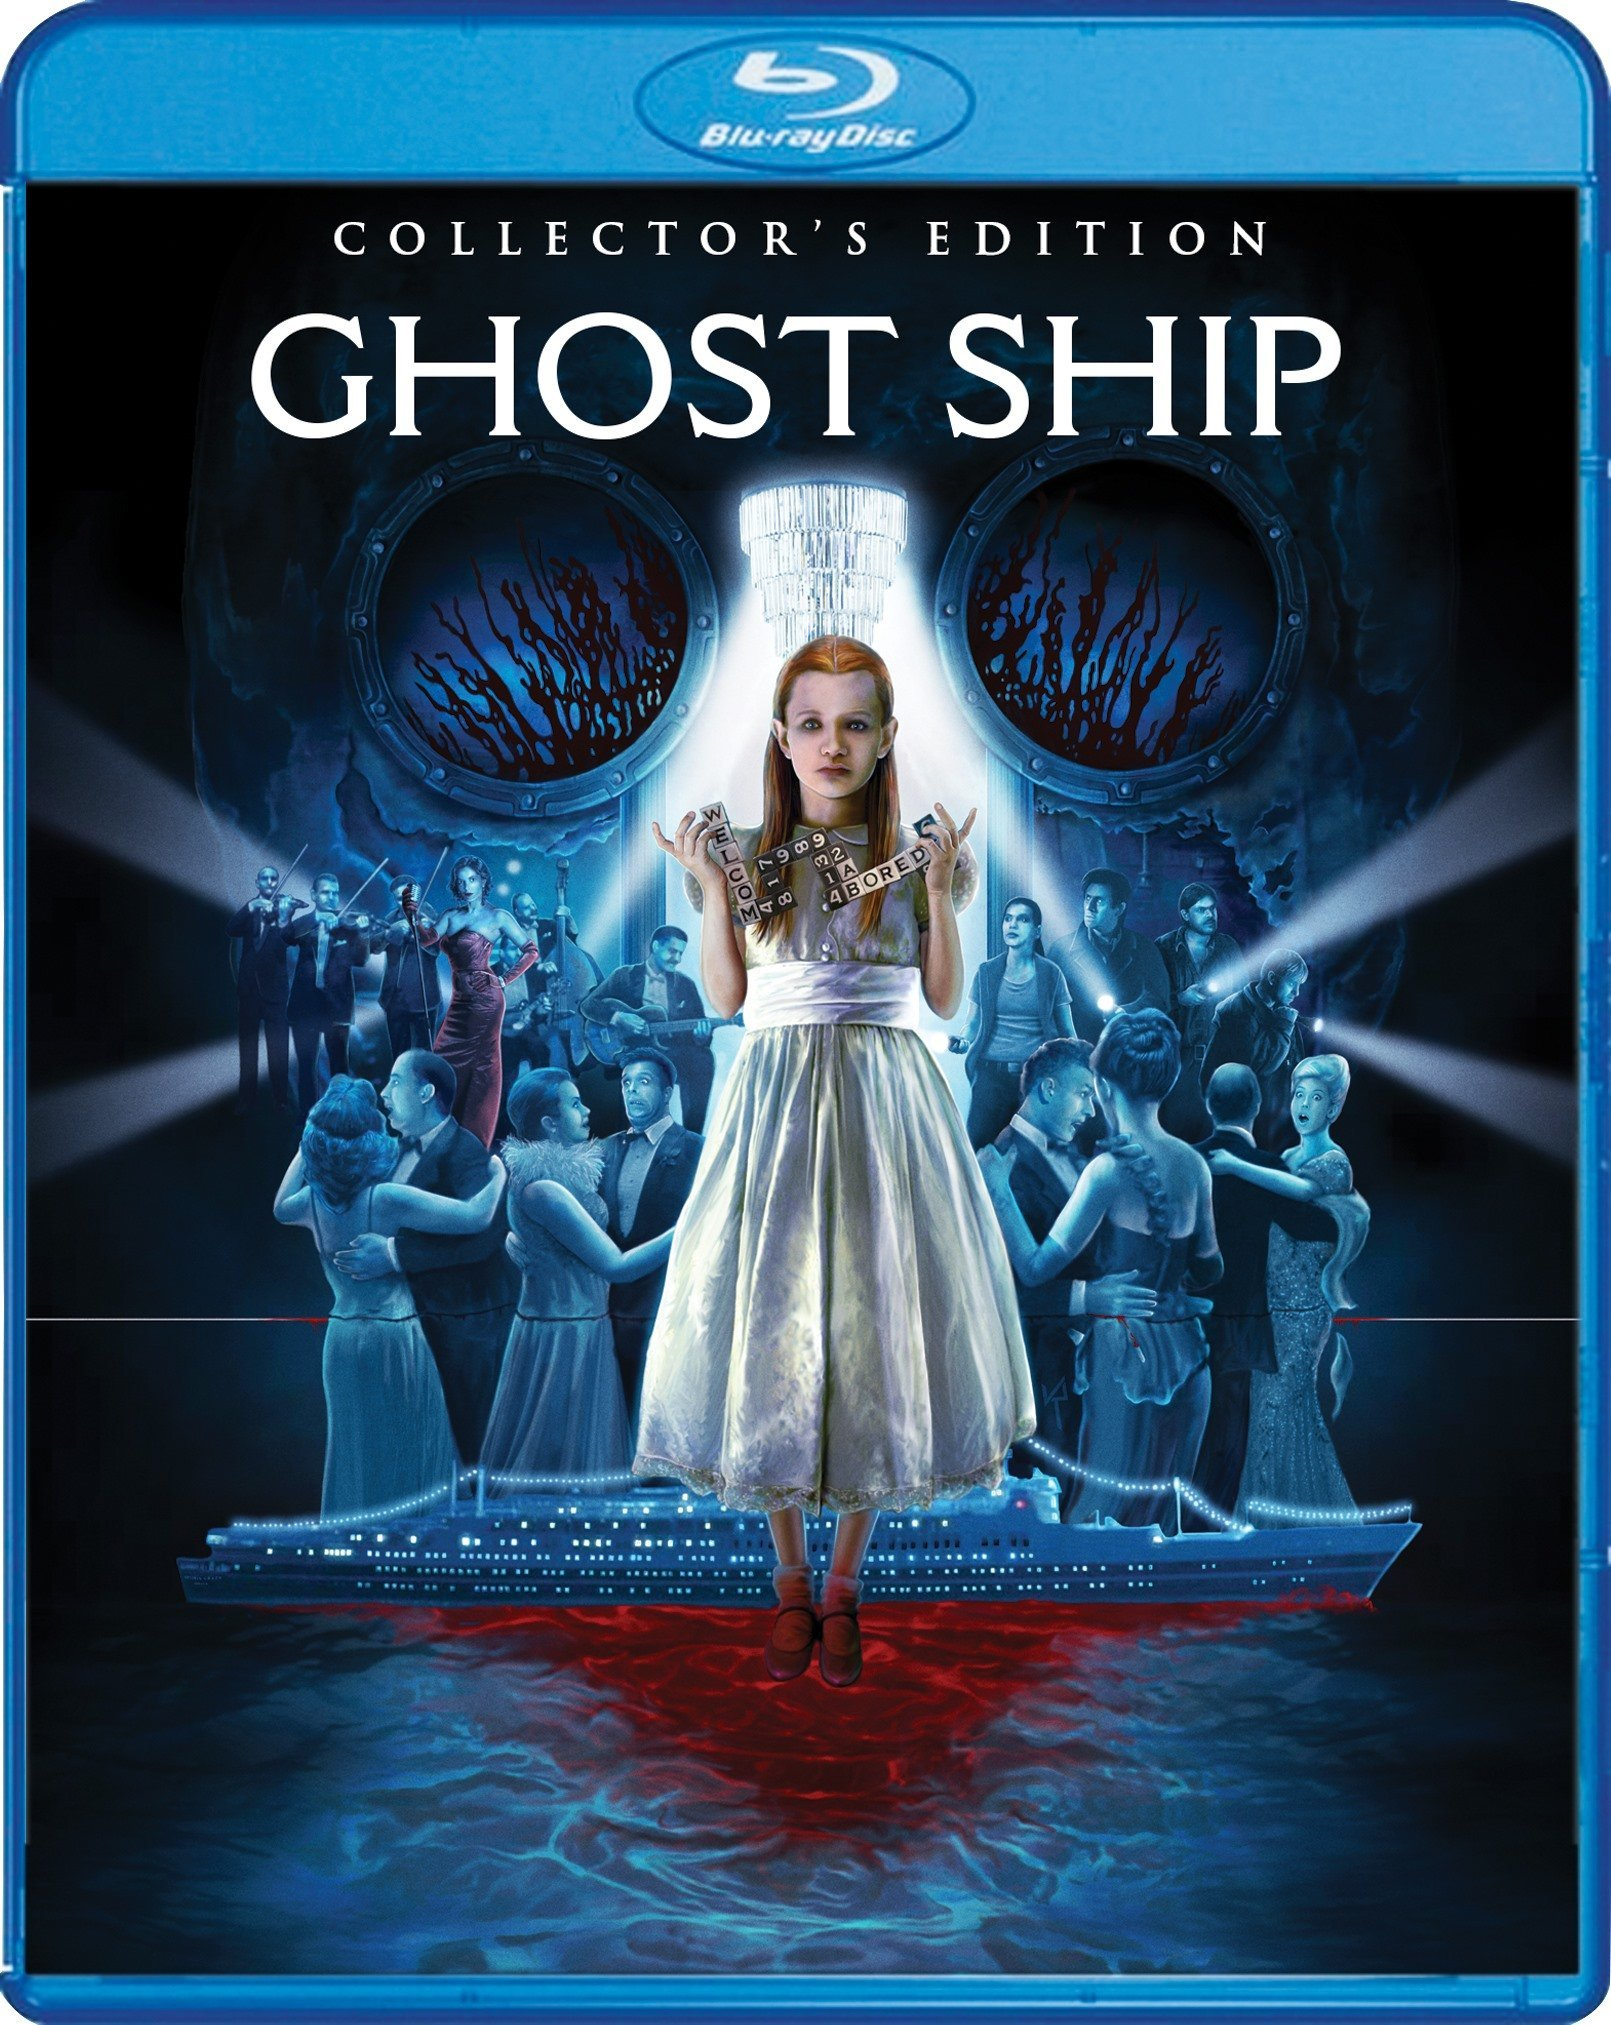 GHOST SHIP SPECIAL FEATURES ANNOUNCED